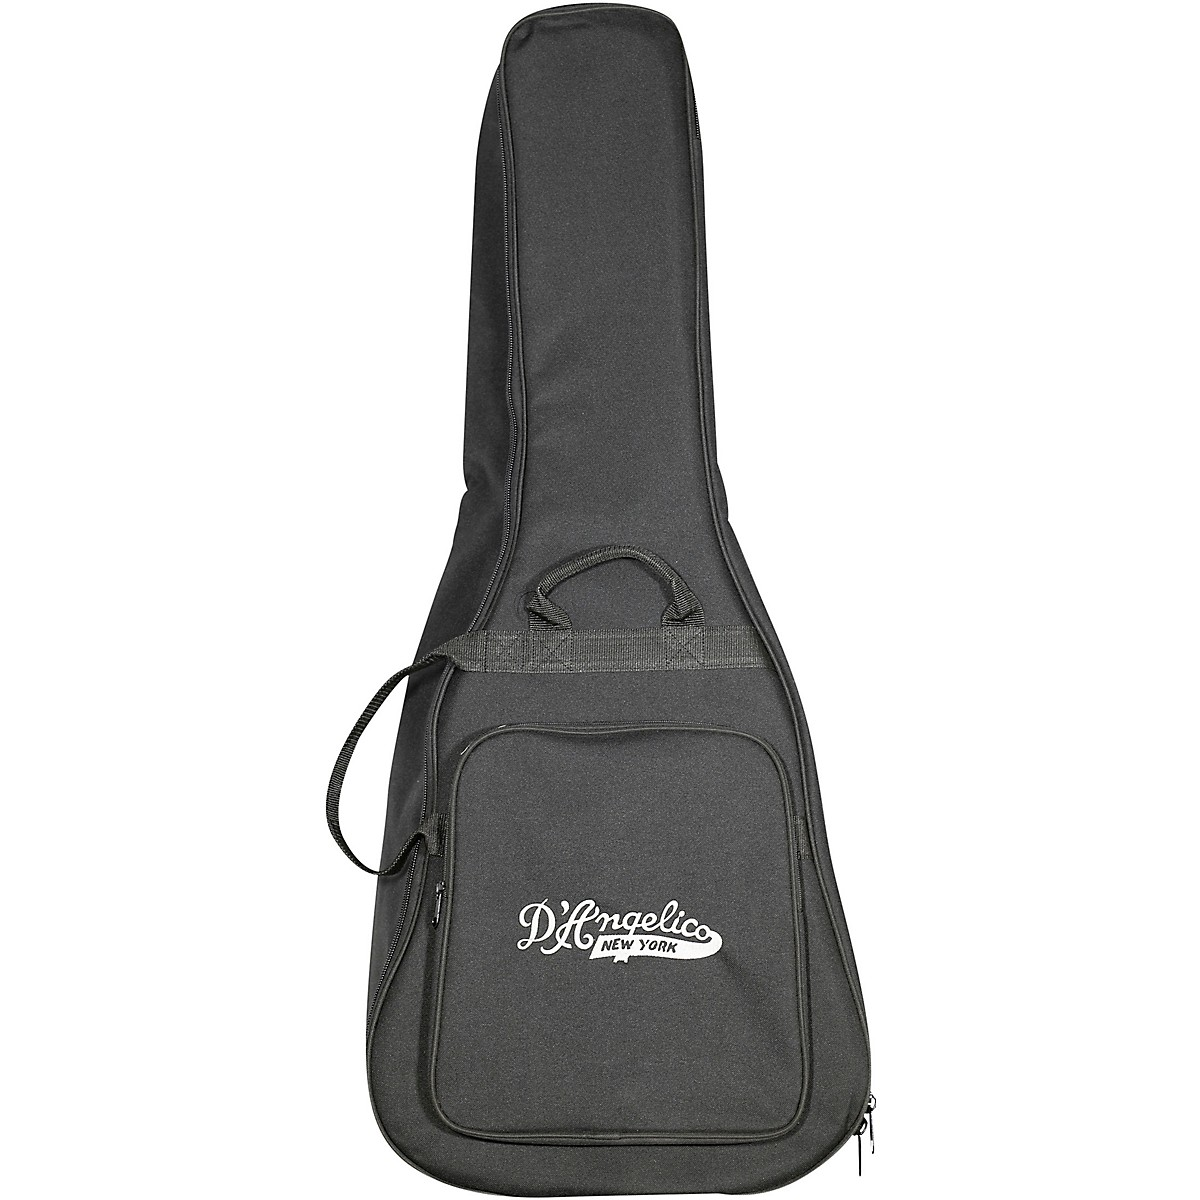 D'Angelico Dreadnought and Grand Auditorium Acoustic Guitar Gig Bag